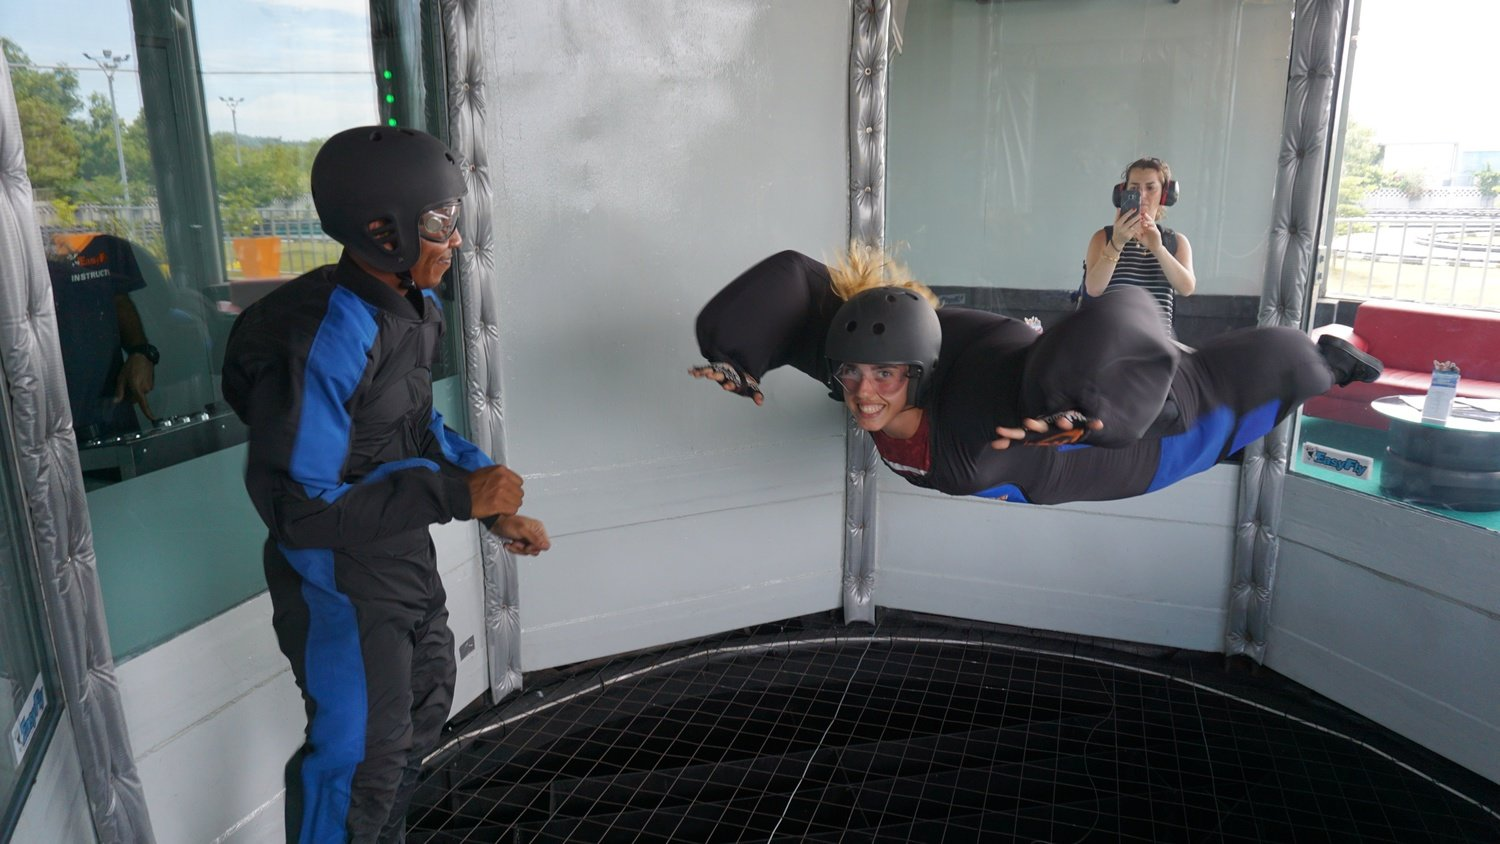 First timer - Above 140 cm height (2 skydives)